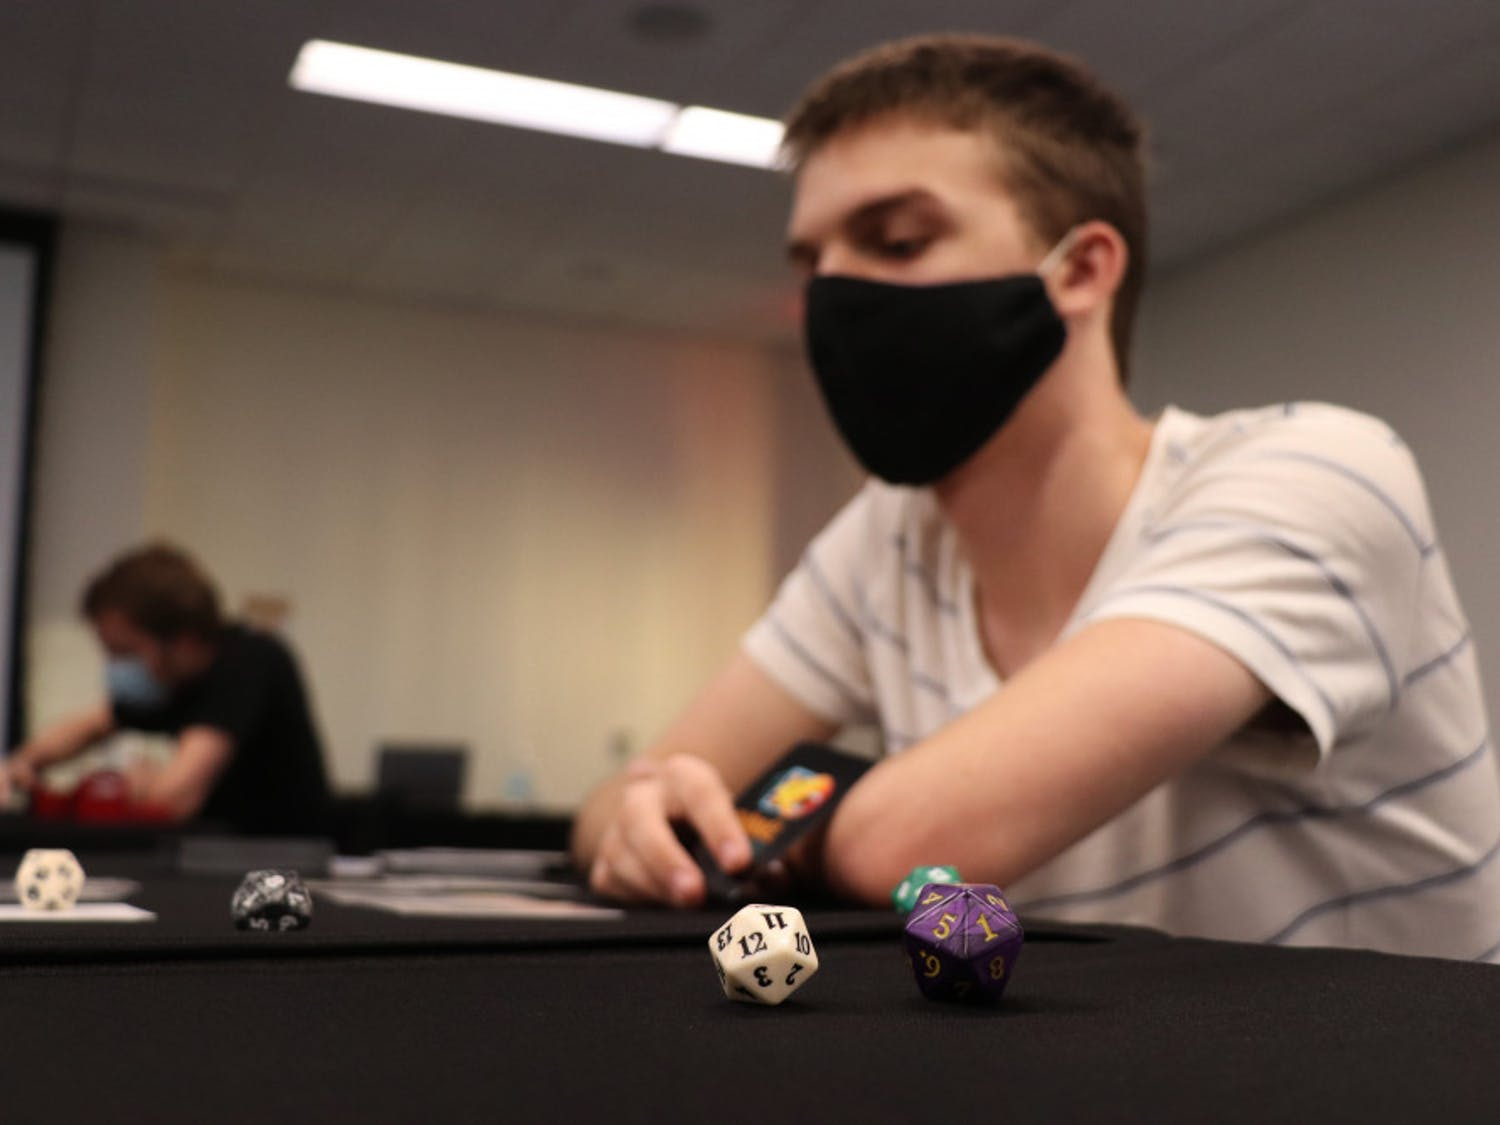 Ryan Feldbush, 19, a UF computer science sophomore, is seen playing 'Magic: The Gathering' at the Reitz Student Union on Wednesday, Sept. 30, 2020. Feldbush said he's played the game for six years now.